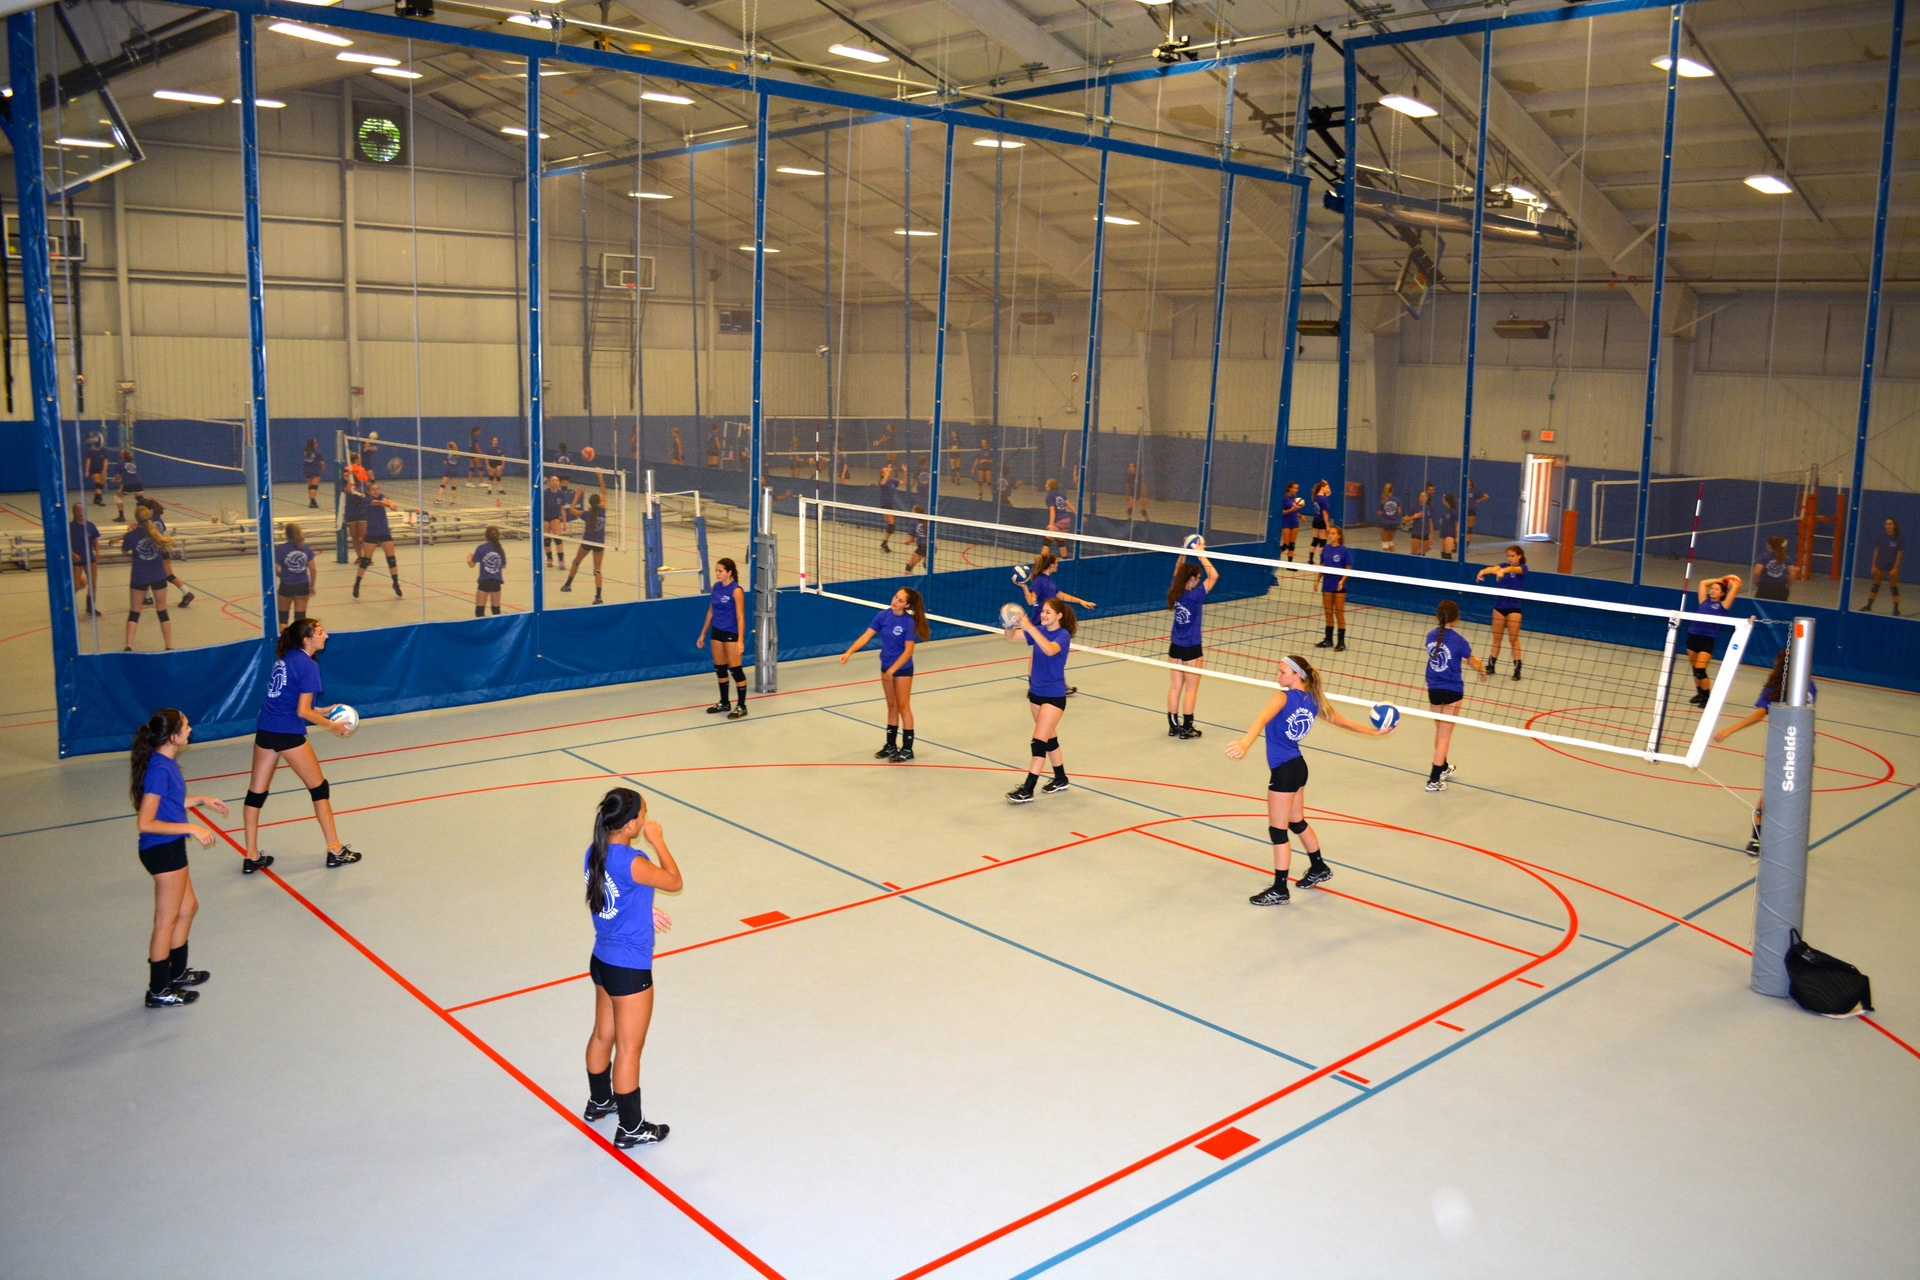 Open Indoor Volleyball Courts Near Me - The Ground Beneath Her Feet